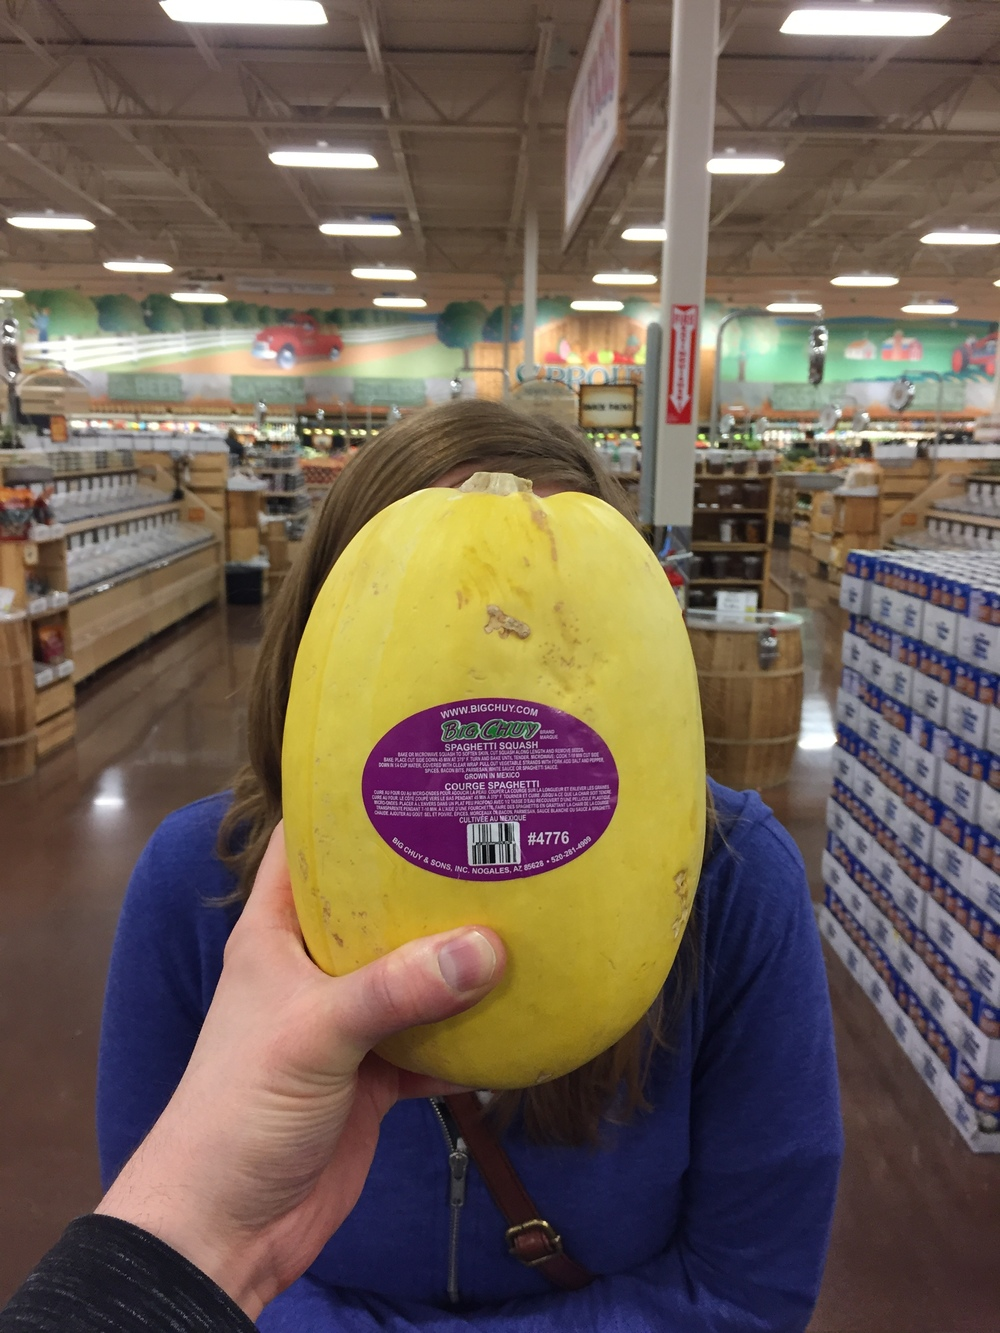 If you've ever wondered whether your face is the shape of a spaghetti squash, mine is.